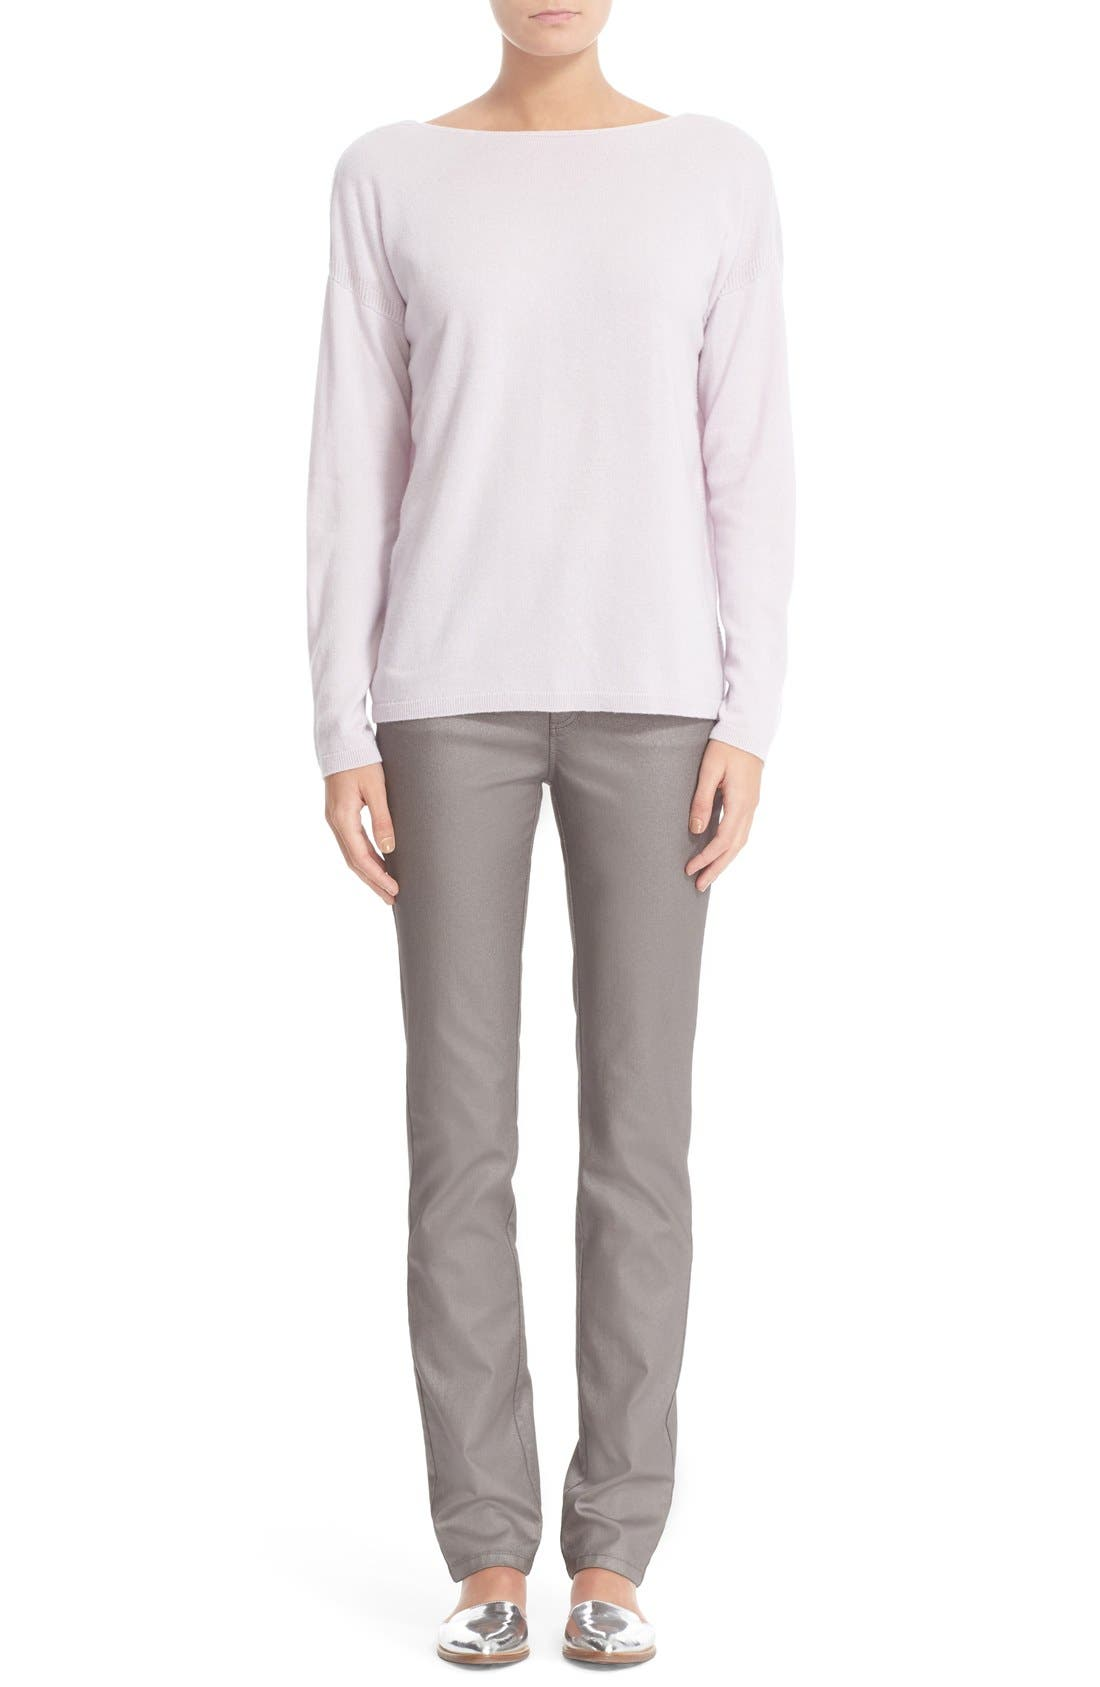 LAFAYETTE 148 NEW YORK, Curvy Fit Skinny Jeans, Alternate thumbnail 9, color, SILVER